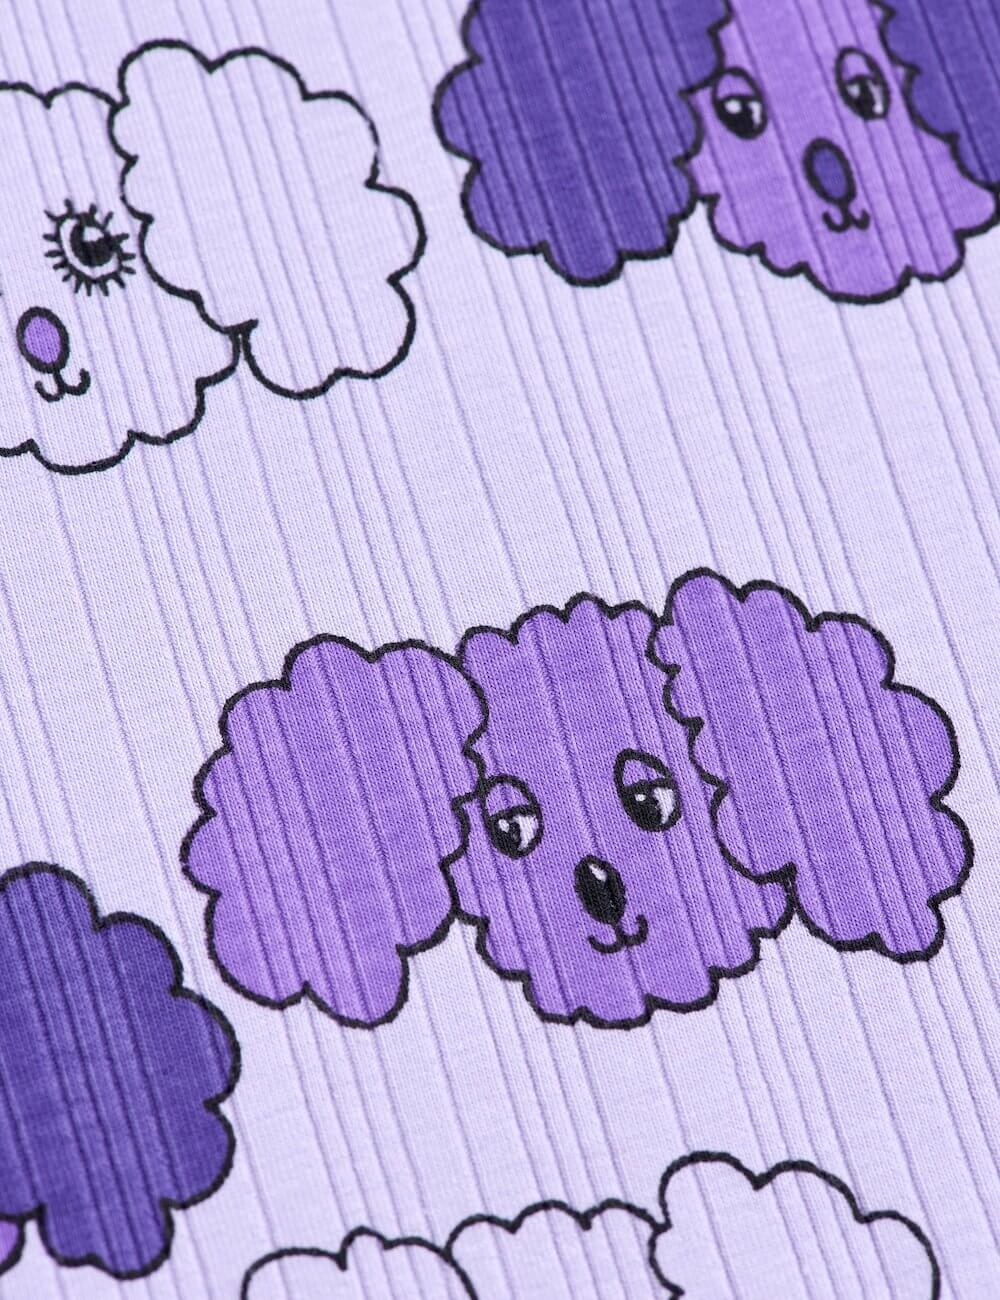 Mini Rodini Fluffy Dog S/S Tee (Purple) | Tiny People